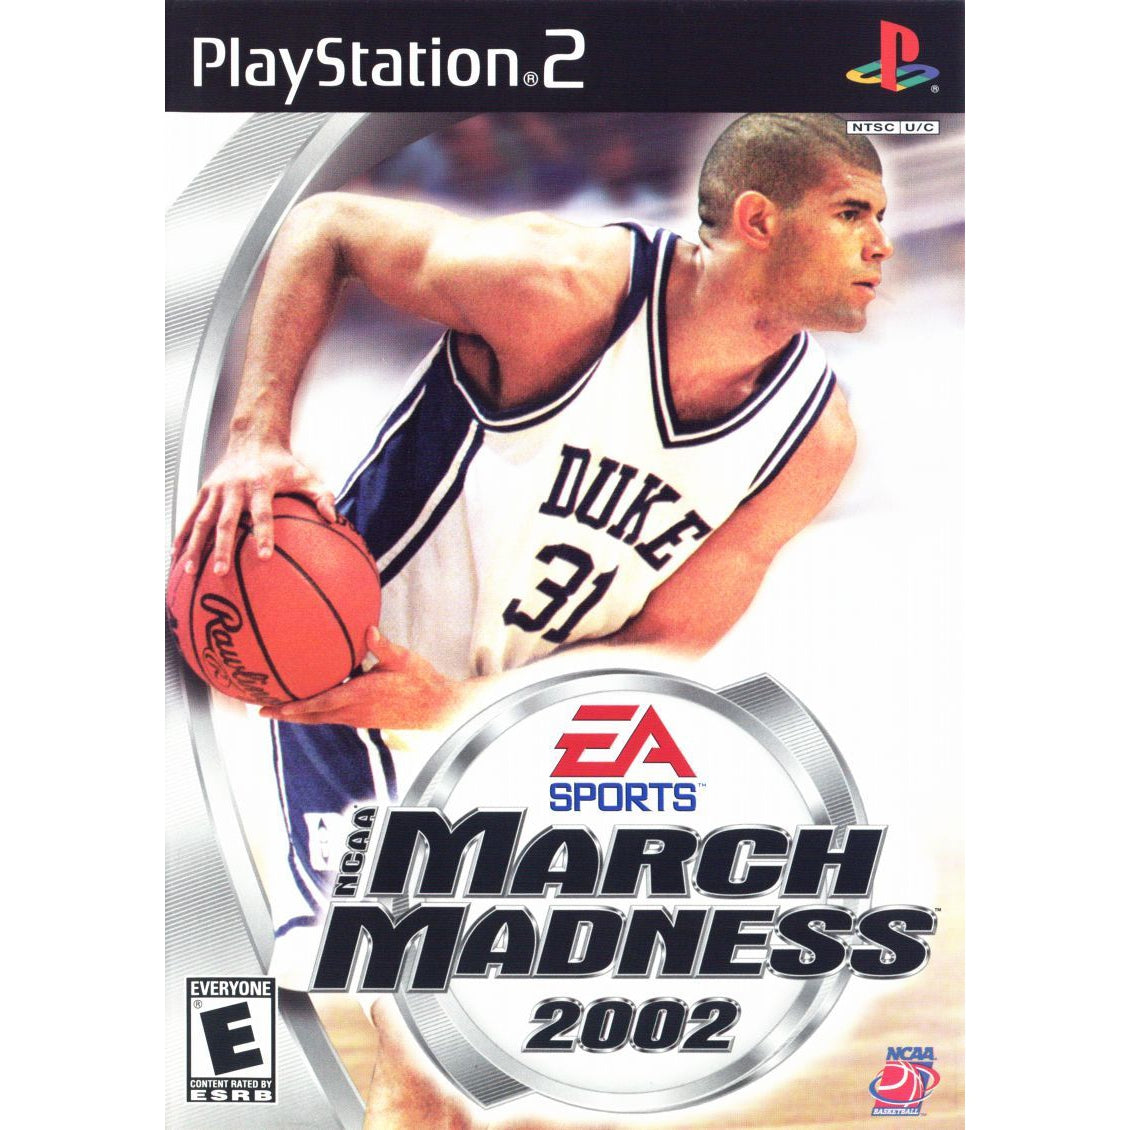 NCAA March Madness 2002 - PlayStation 2 (PS2) Game Complete - YourGamingShop.com - Buy, Sell, Trade Video Games Online. 120 Day Warranty. Satisfaction Guaranteed.